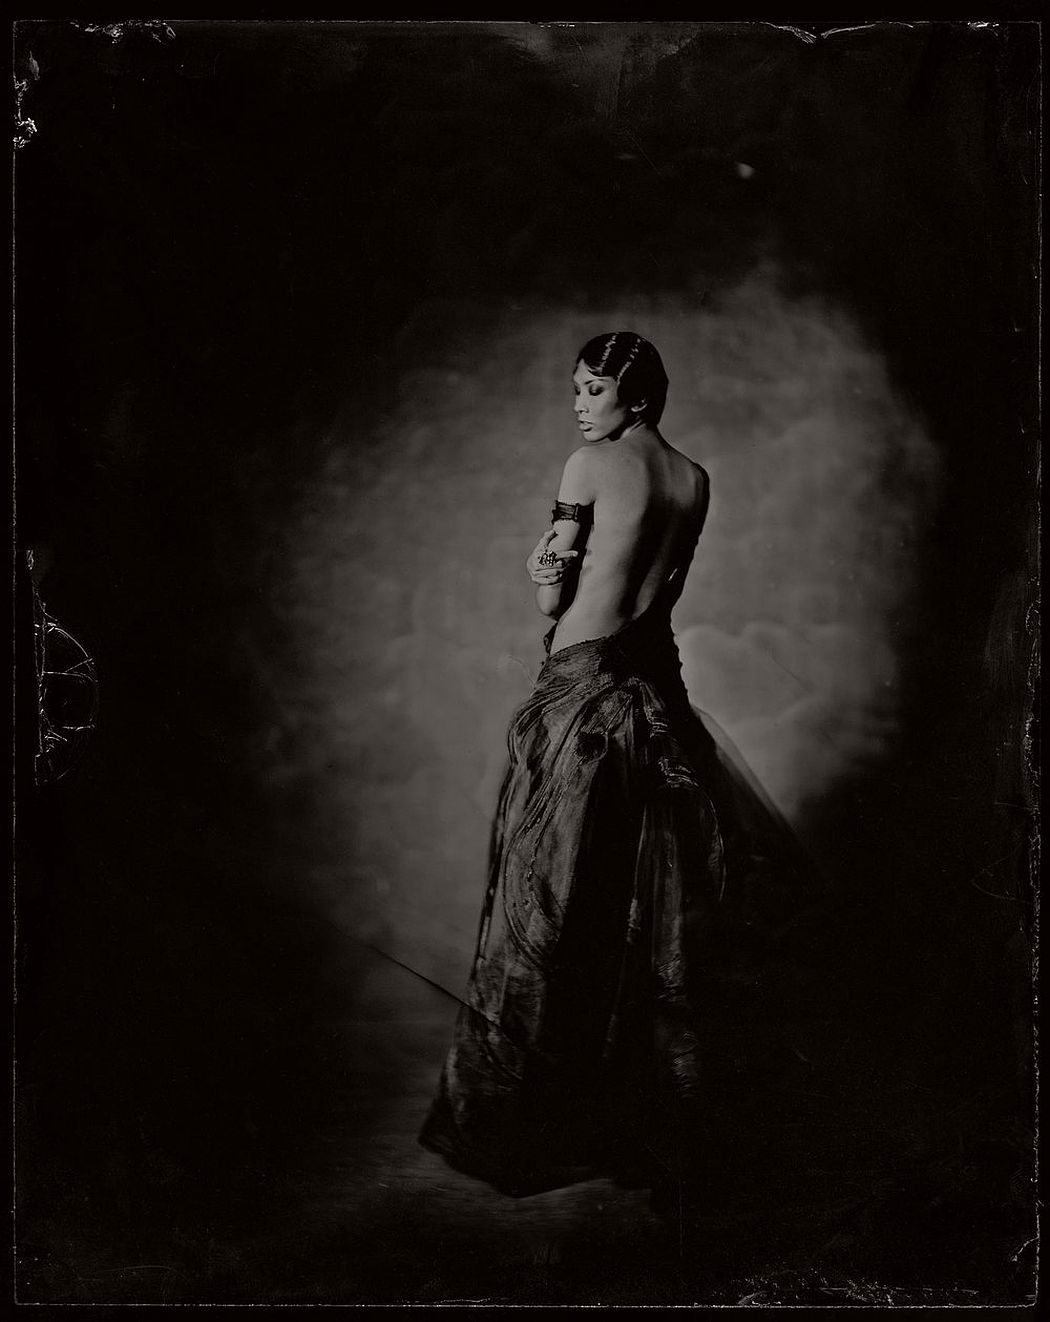 nude-ambrotypes-by-james-weber-04